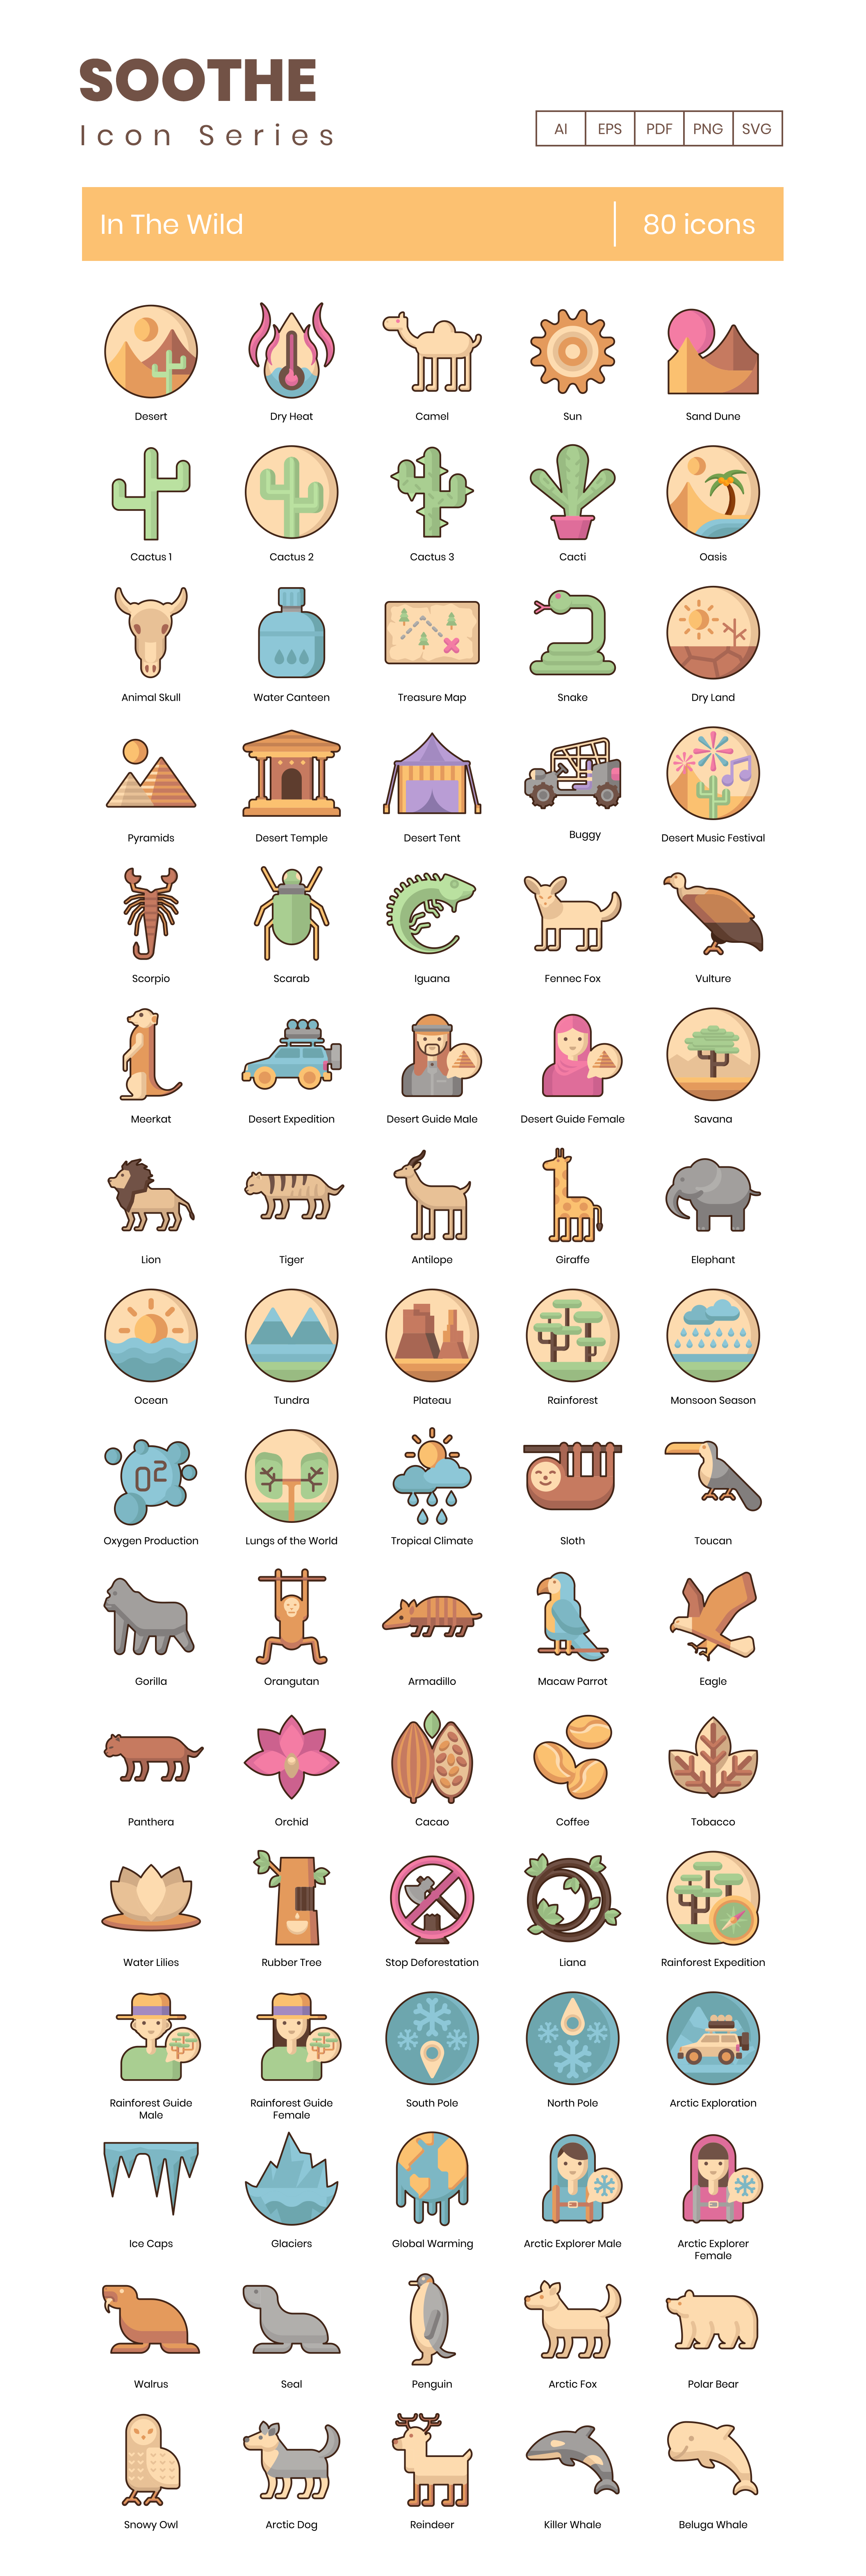 In The Wild Vector Icons Preview Image